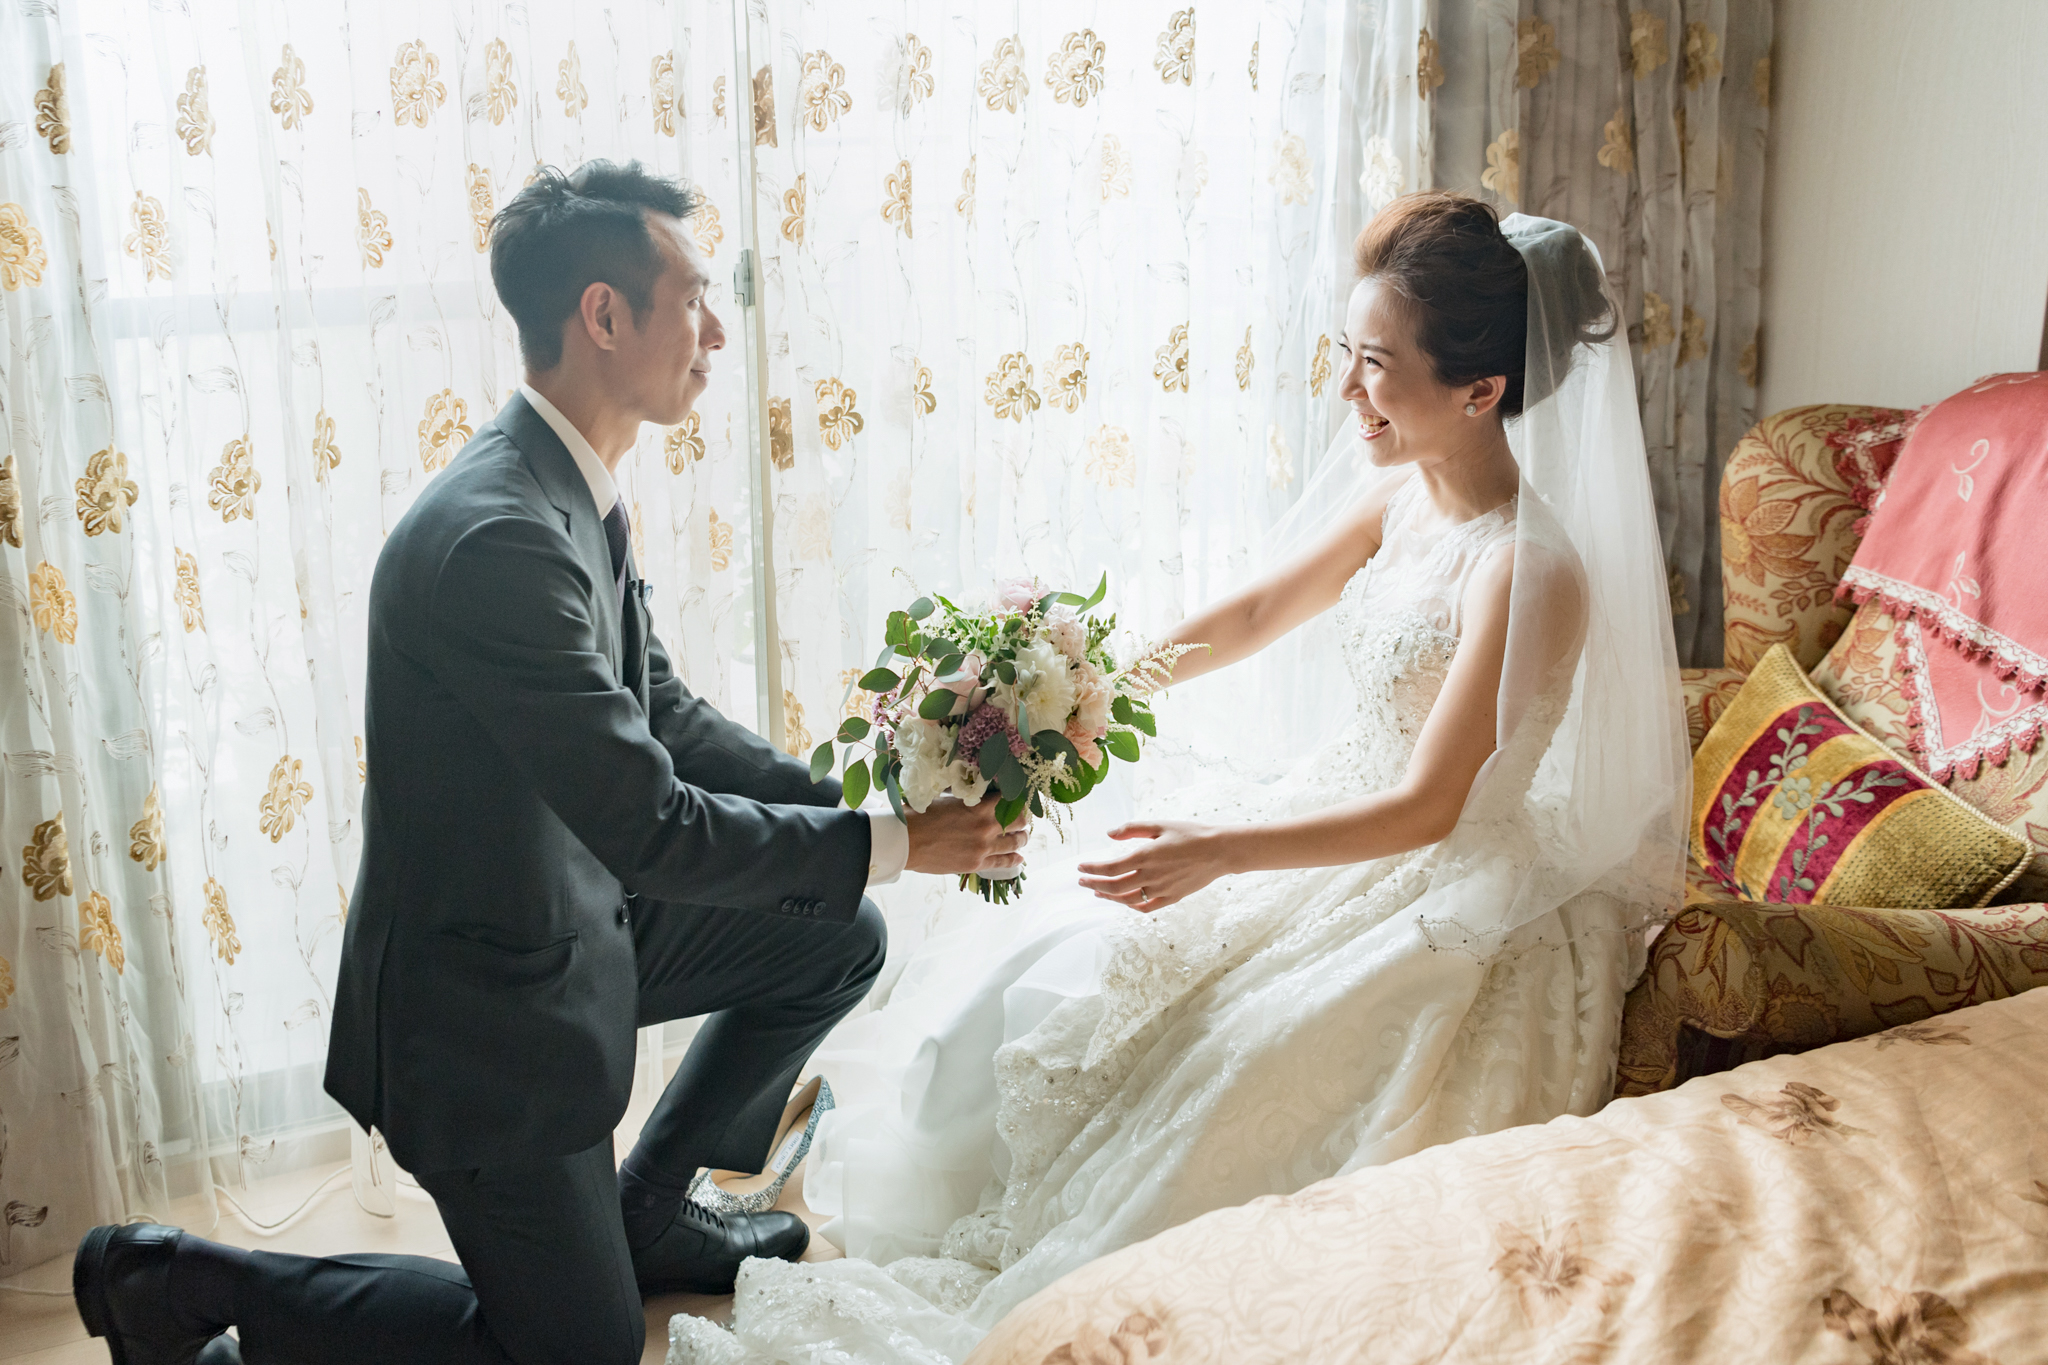 東法, 婚禮紀錄, 雙攝影師, 藝術婚禮, Donfer, Donfer Photography, EASTERN WEDDING, Wedding Day